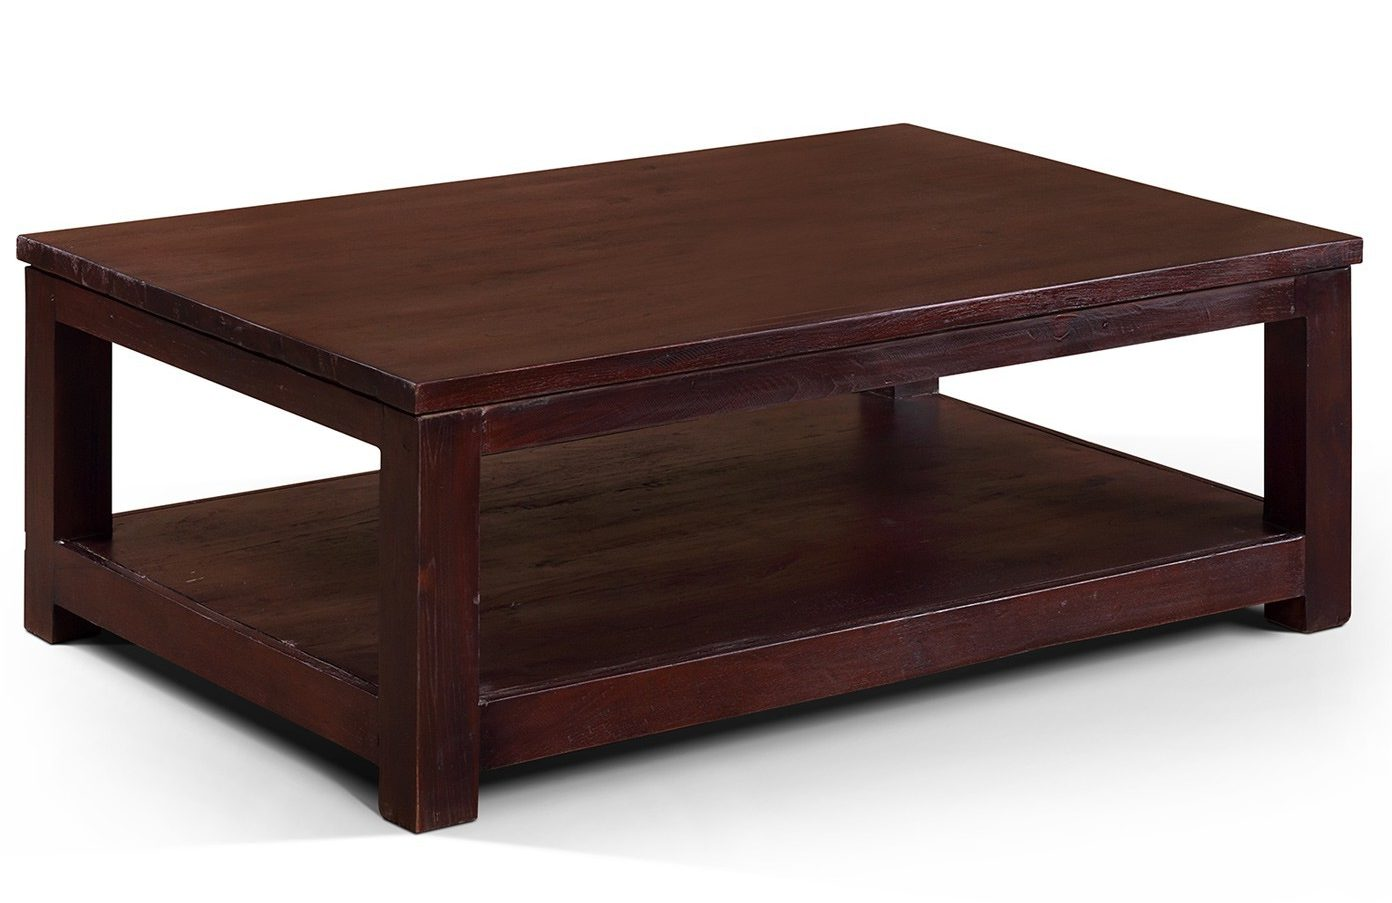 Coffee Tables Under 200 For Modern Living Room Focal Point Roy Home Design